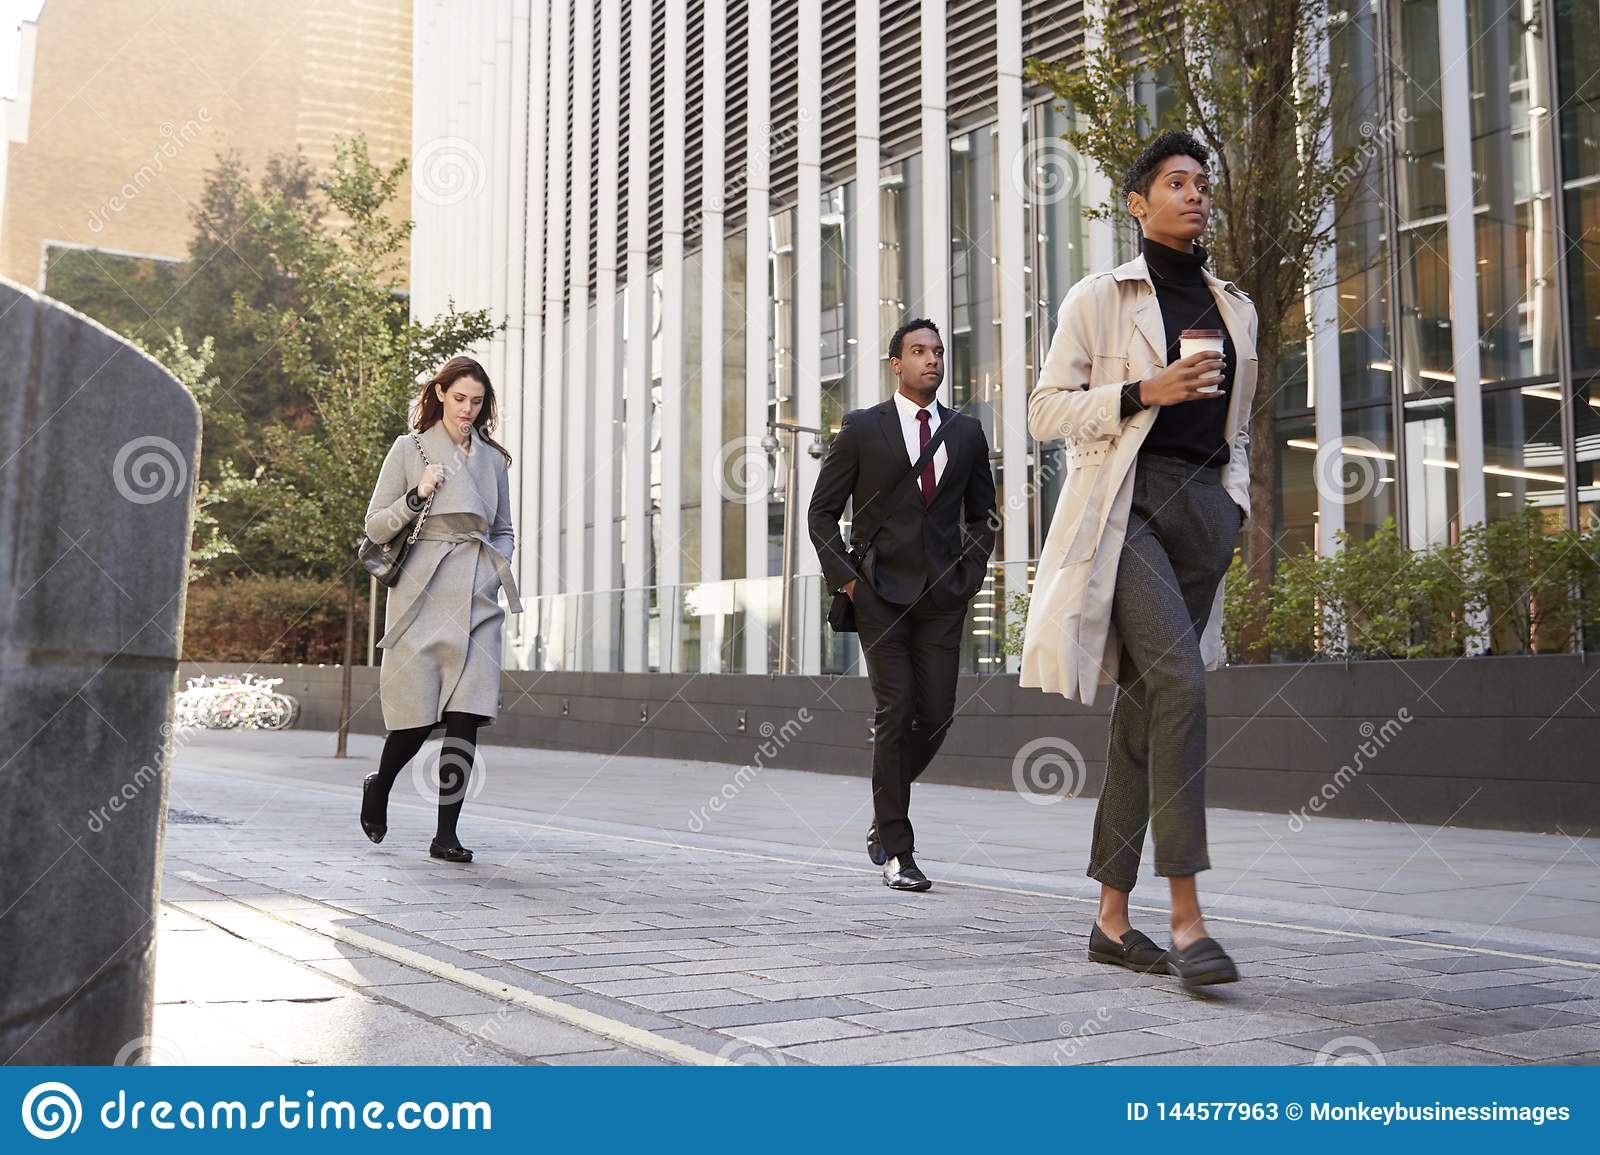 Three millennial city workers walking in the street, low angle, full length